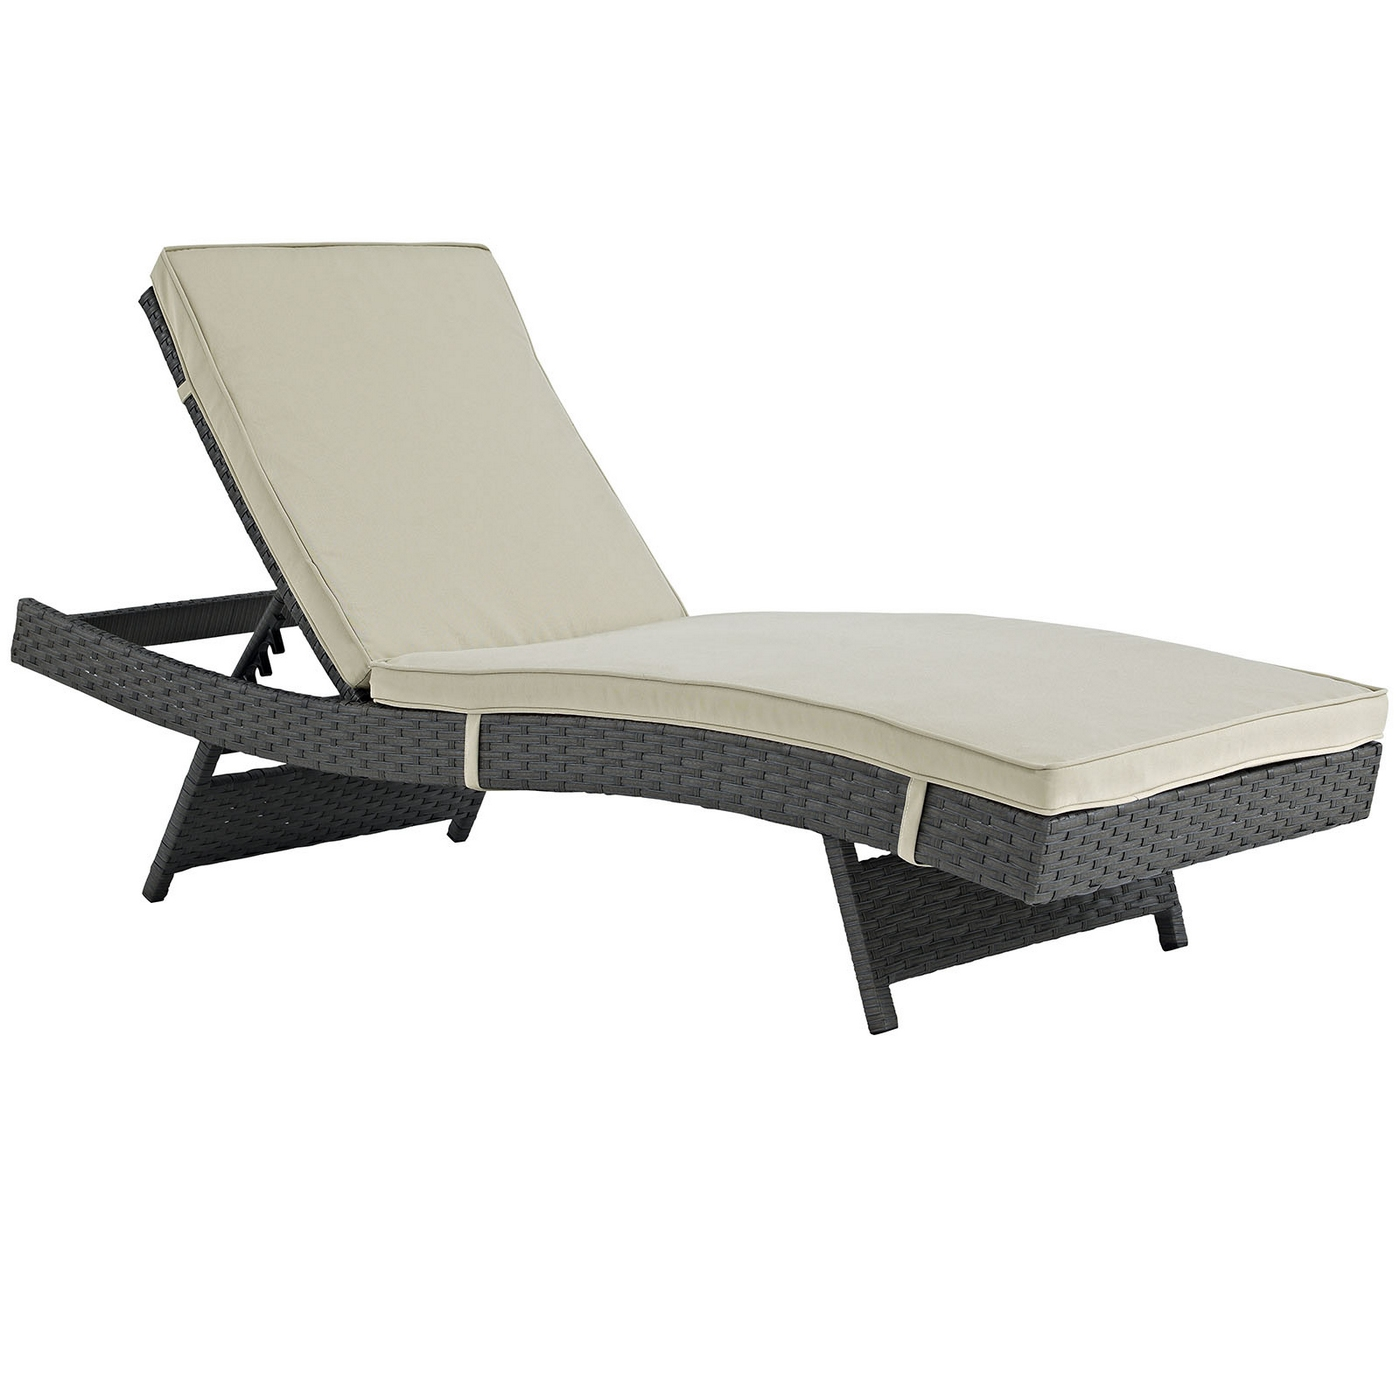 Sojourn modern outdoor patio sunbrella chaise w cushion for Chaise cushions cheap